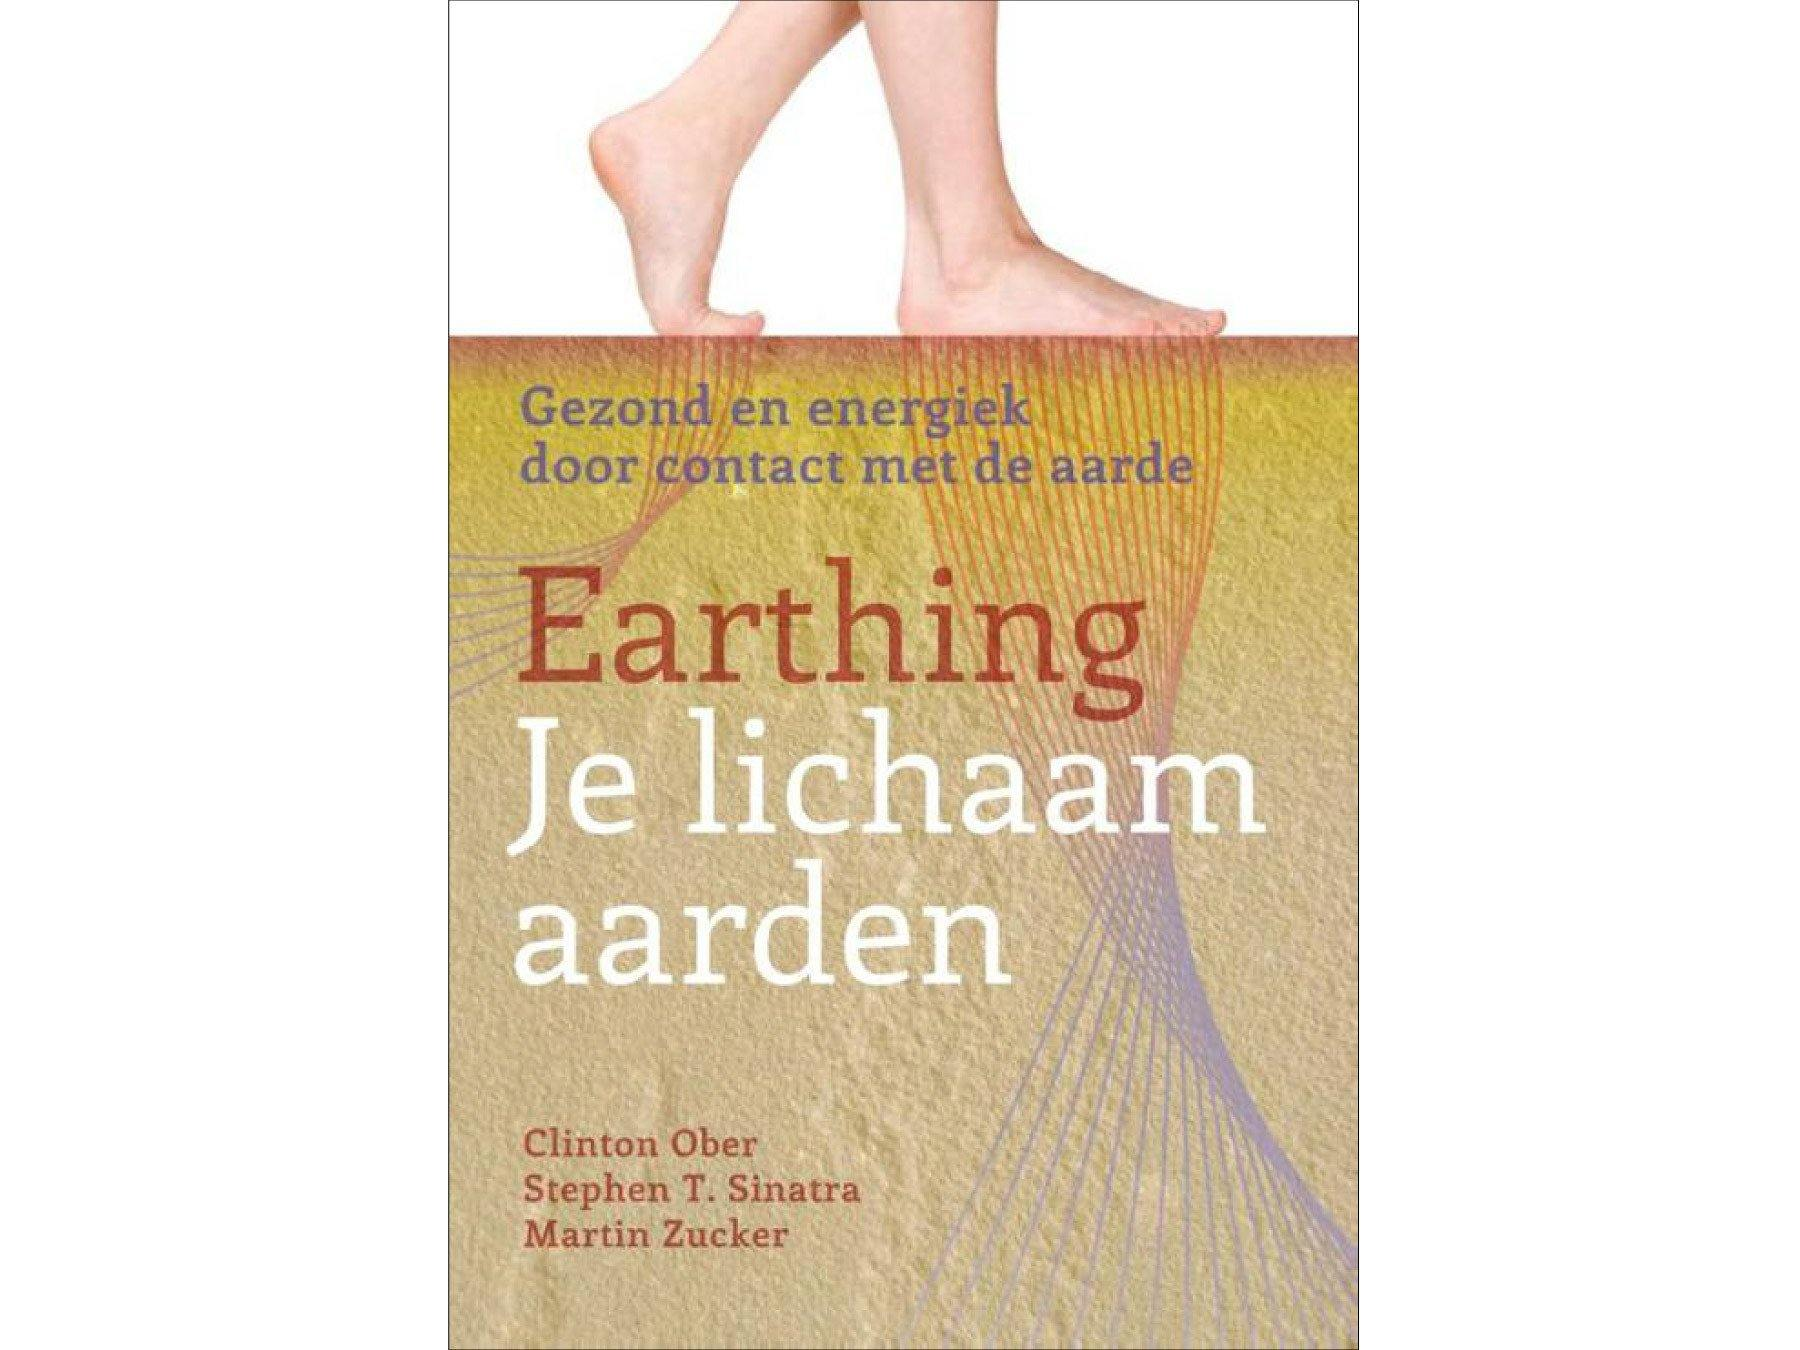 Book dutch - Earthing, Je lichaam aarden (336 p., Clinton Ober, S. Sinatra, M. Zucker) - Aarding